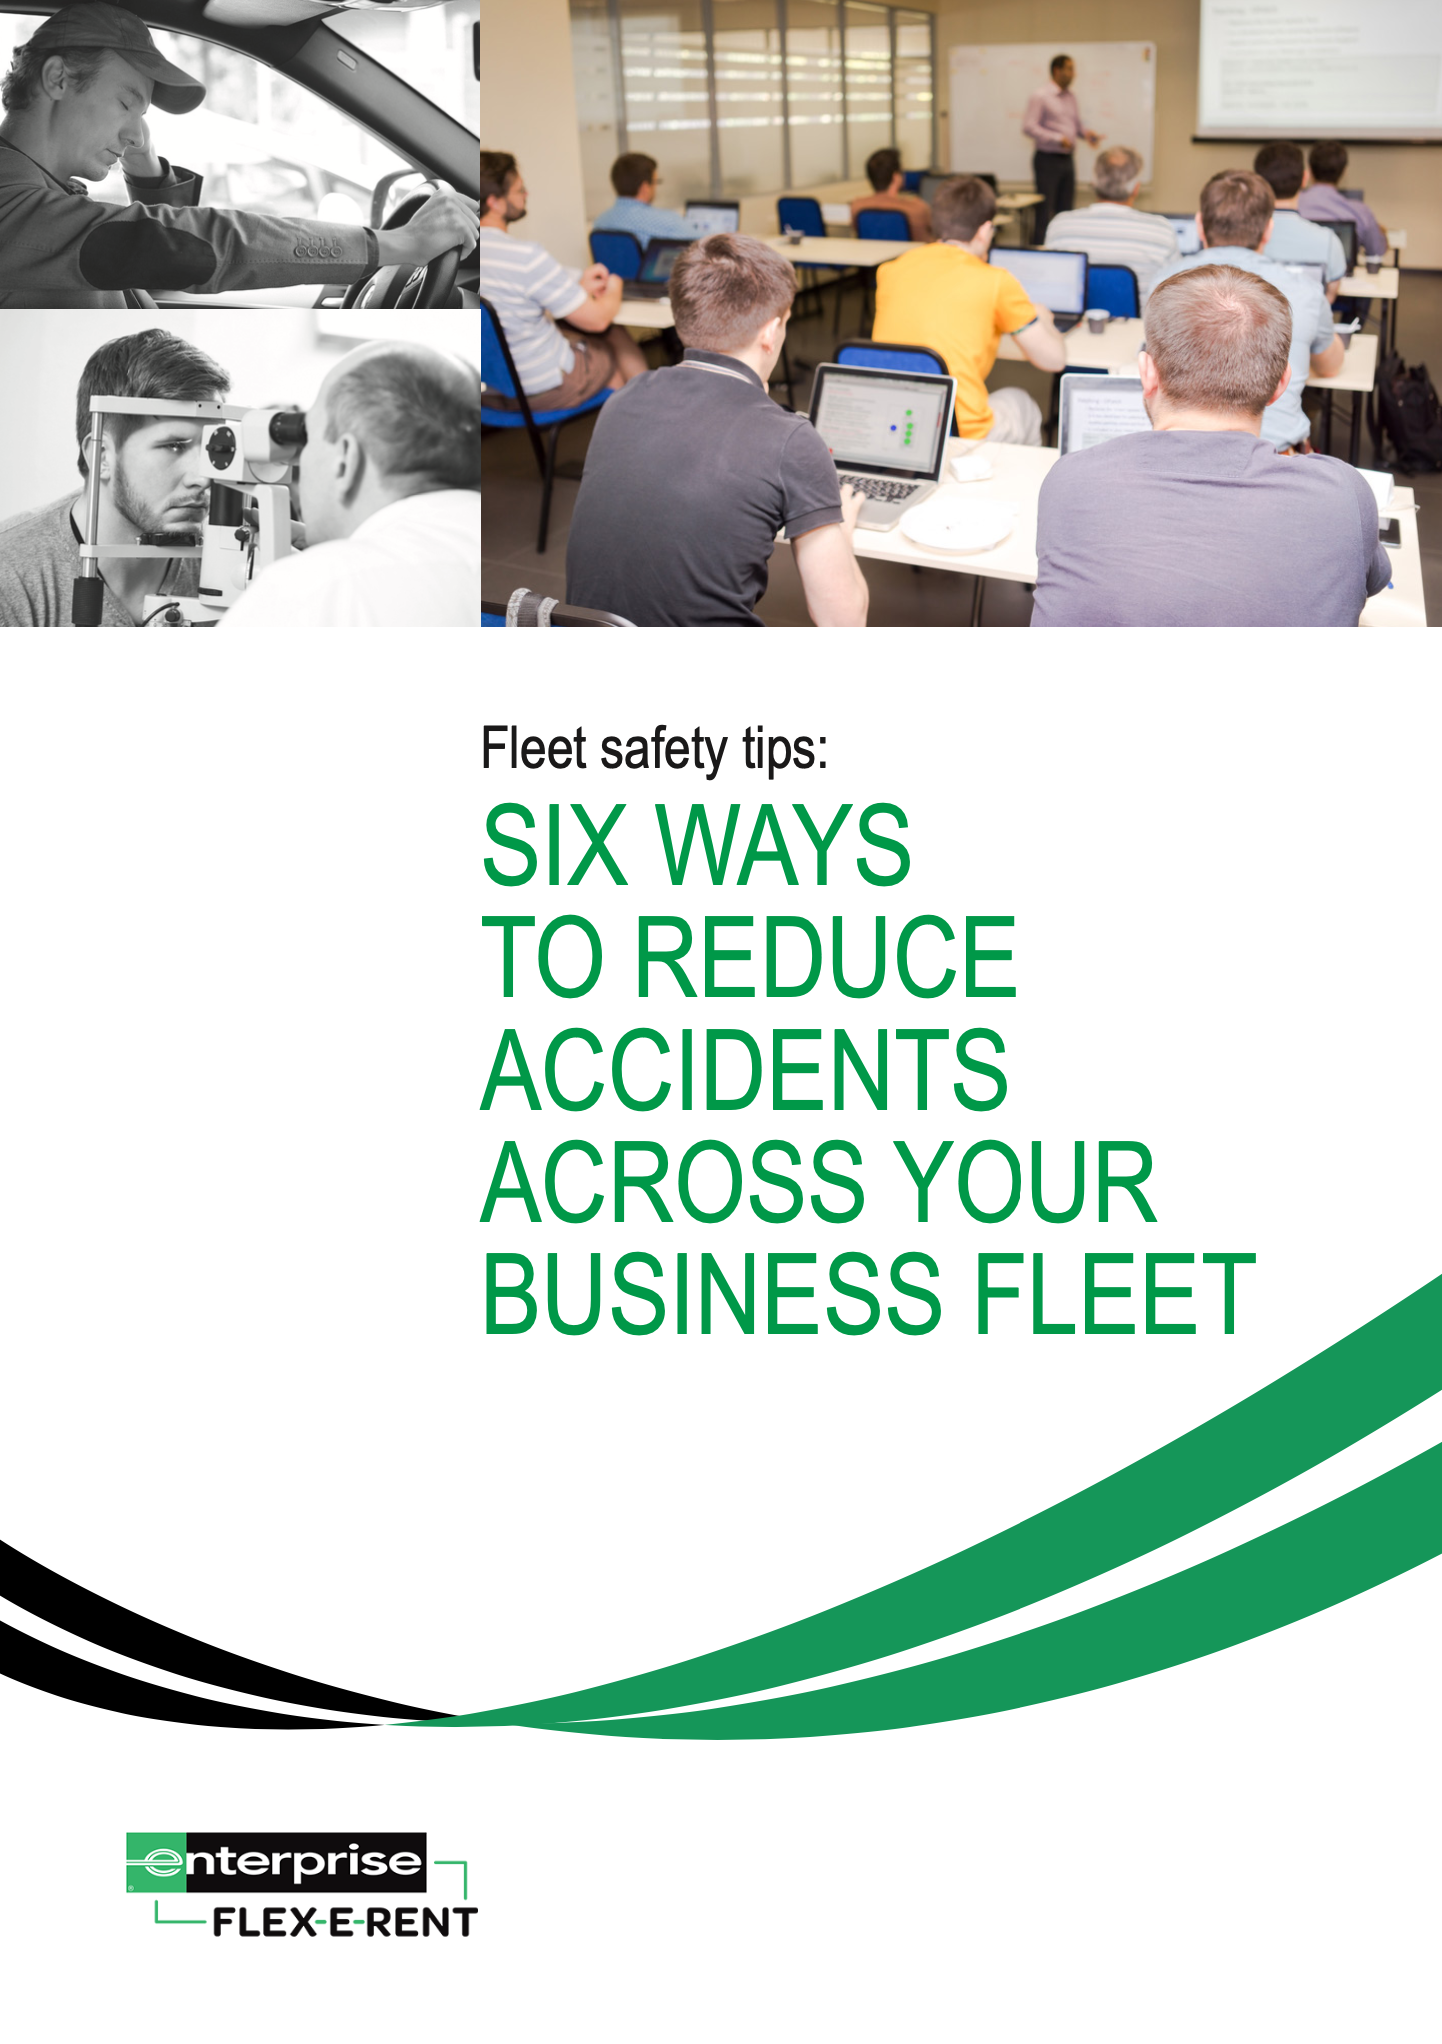 Download our free guide: 'Six ways to reduce accidents across your business fleet'